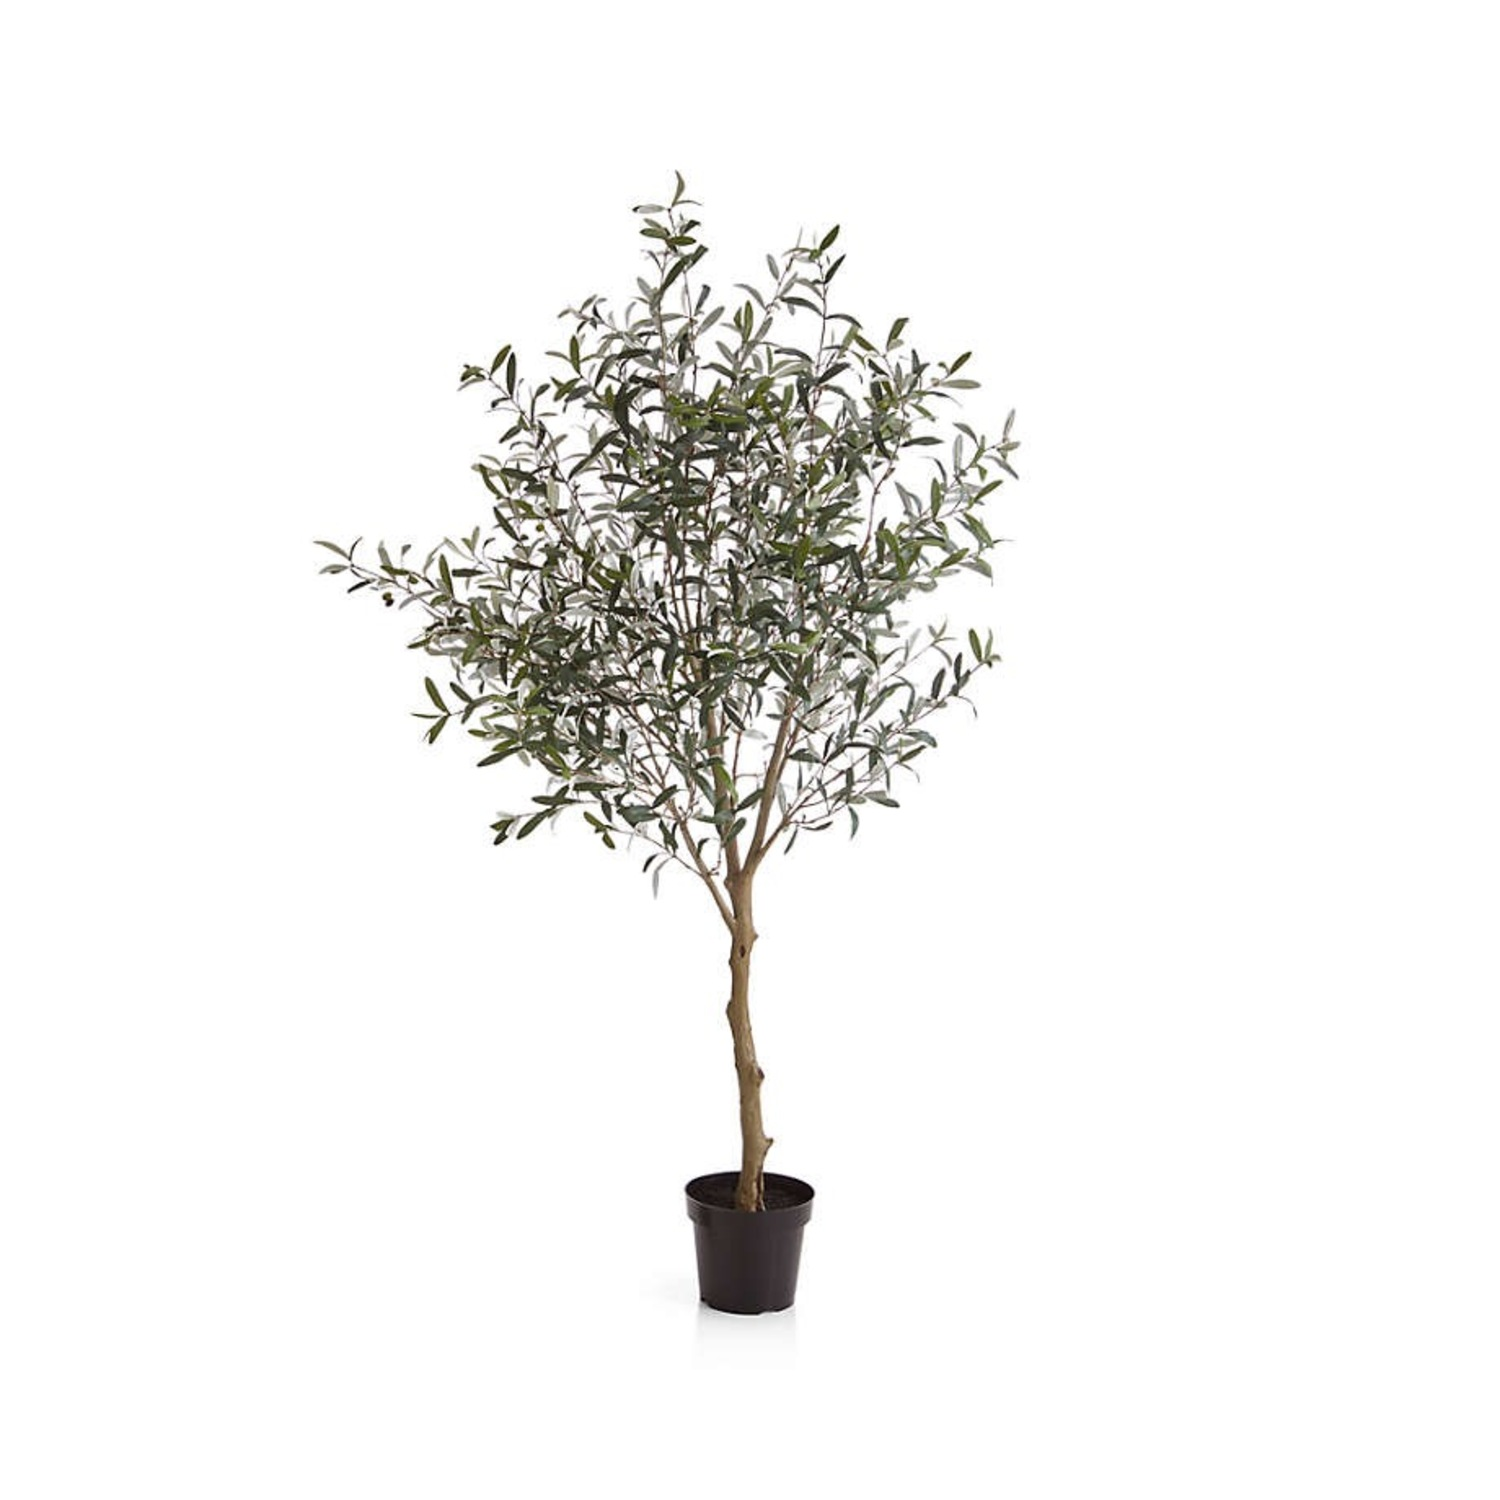 Crate & Barrel 7 Foot Faux Olive Tree - image-2